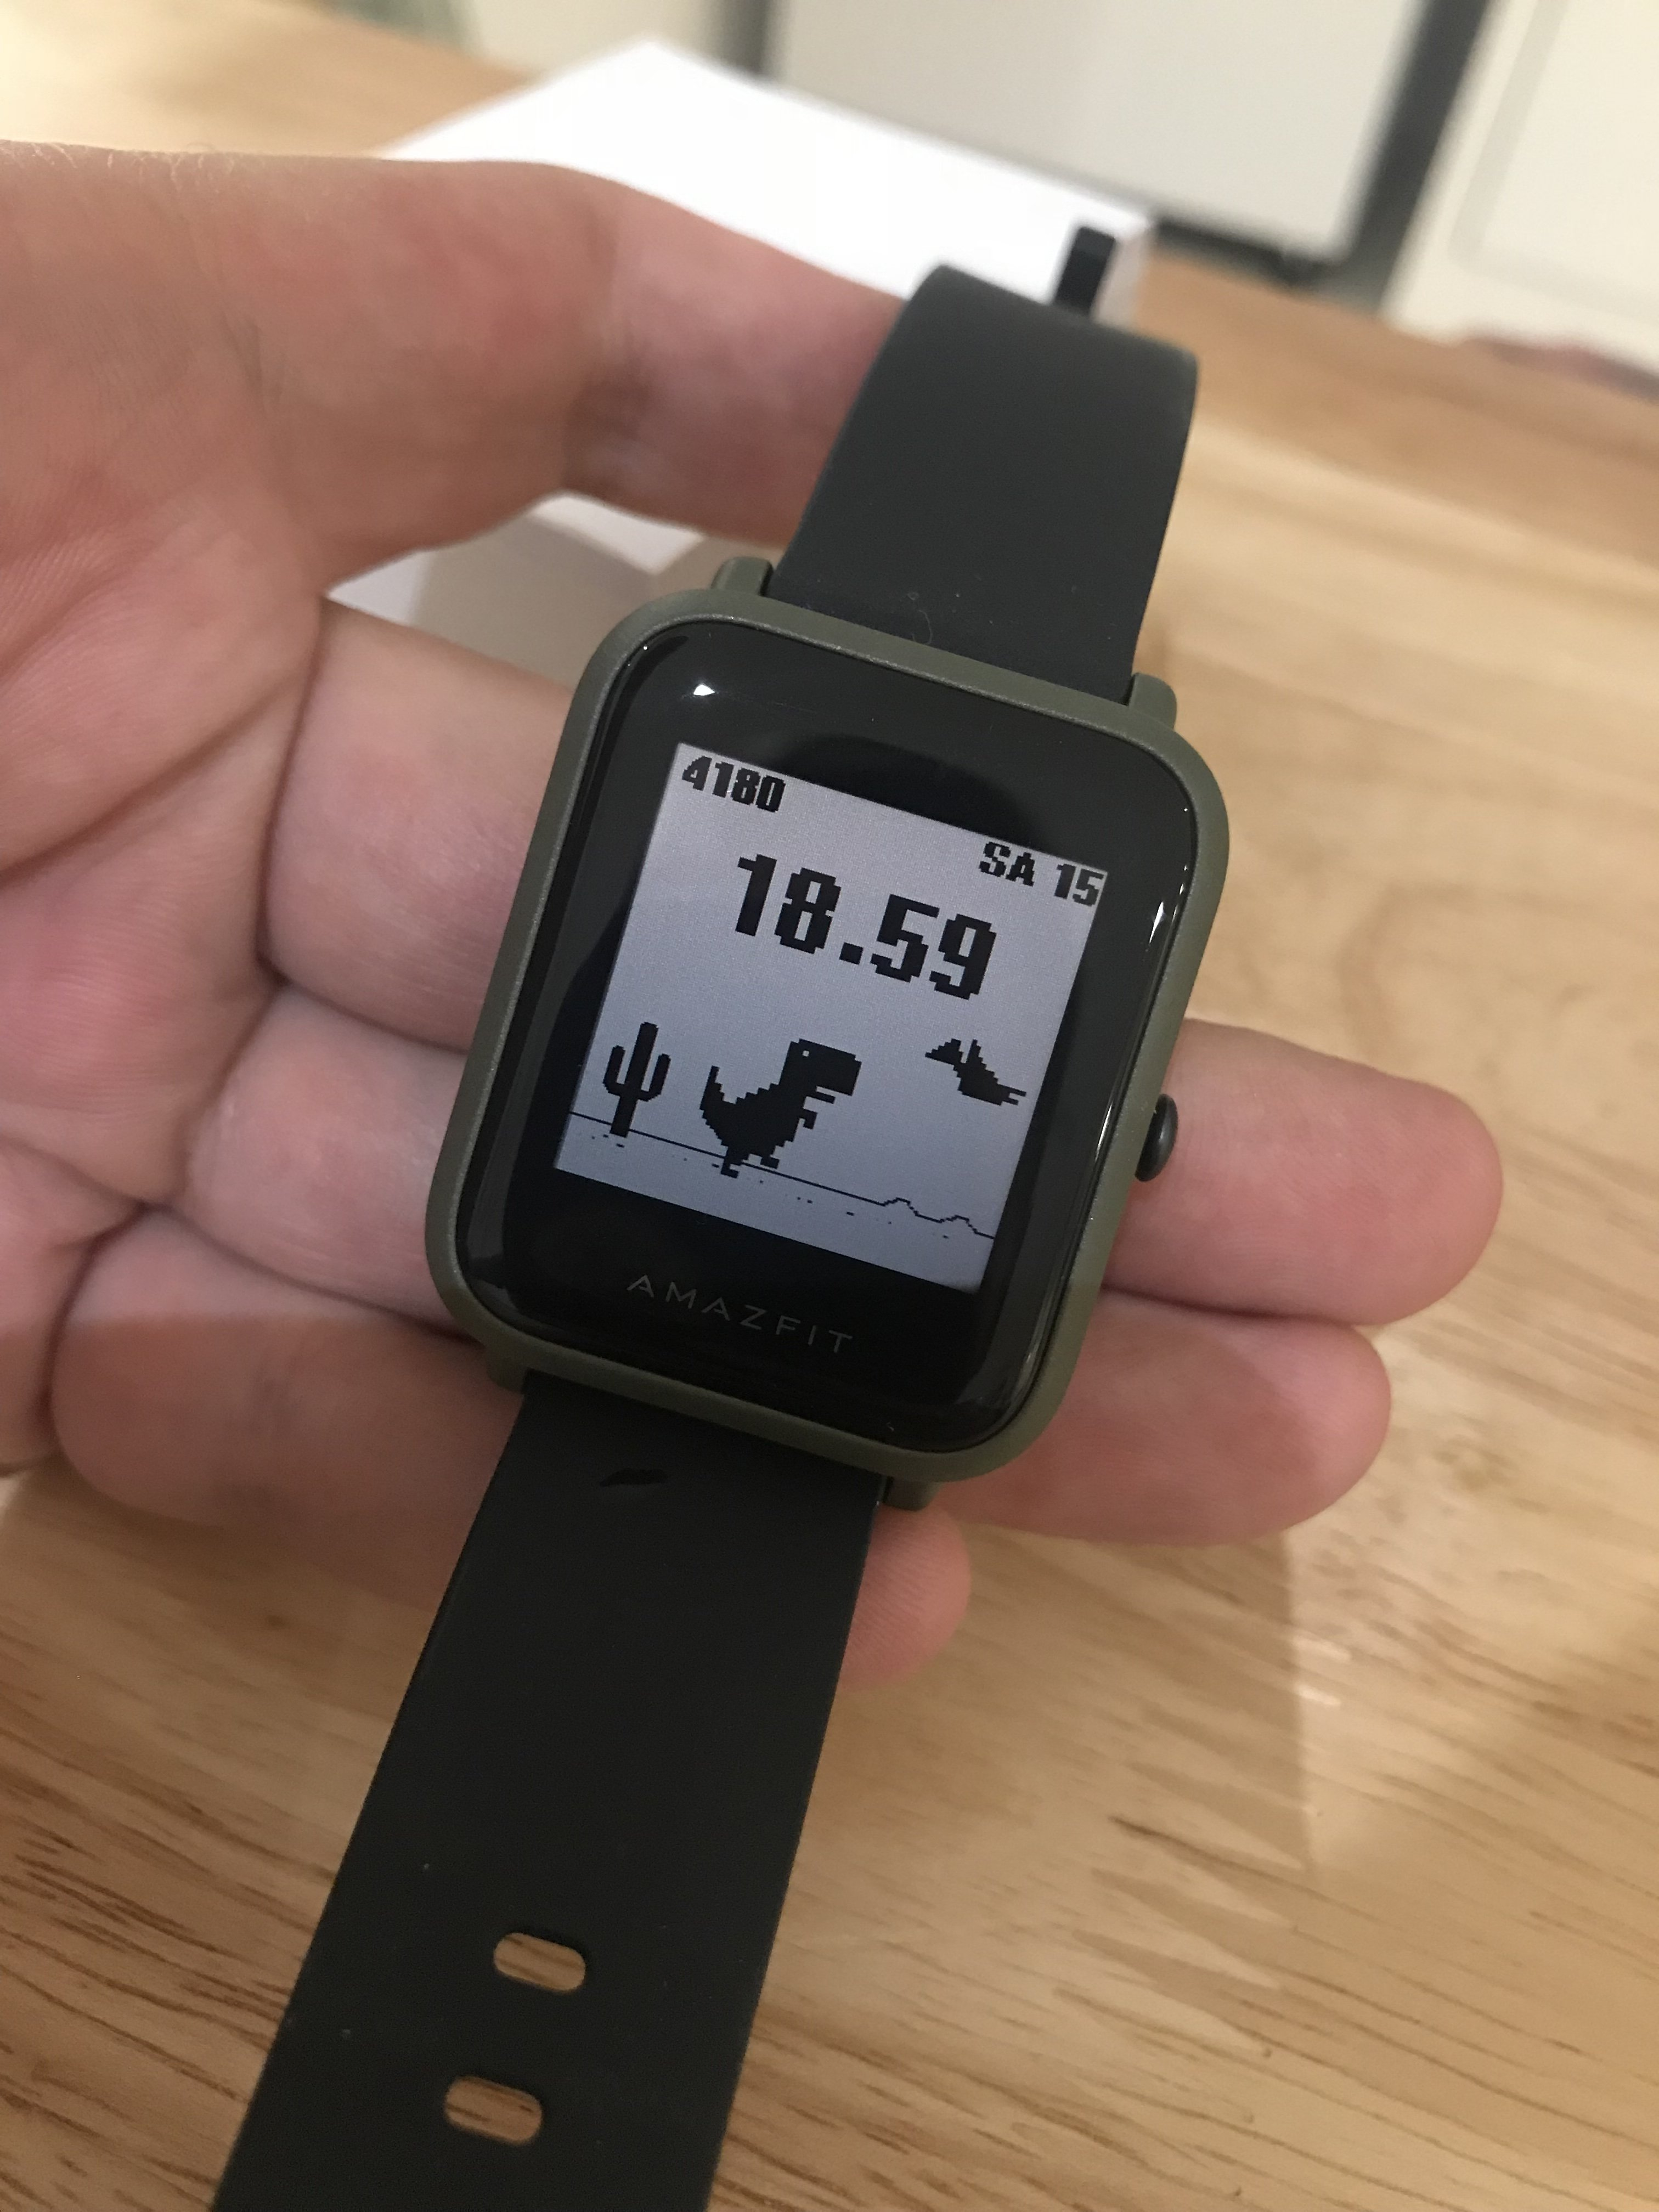 Post custom watch faces for Apple Watch [Merged] | Page 30